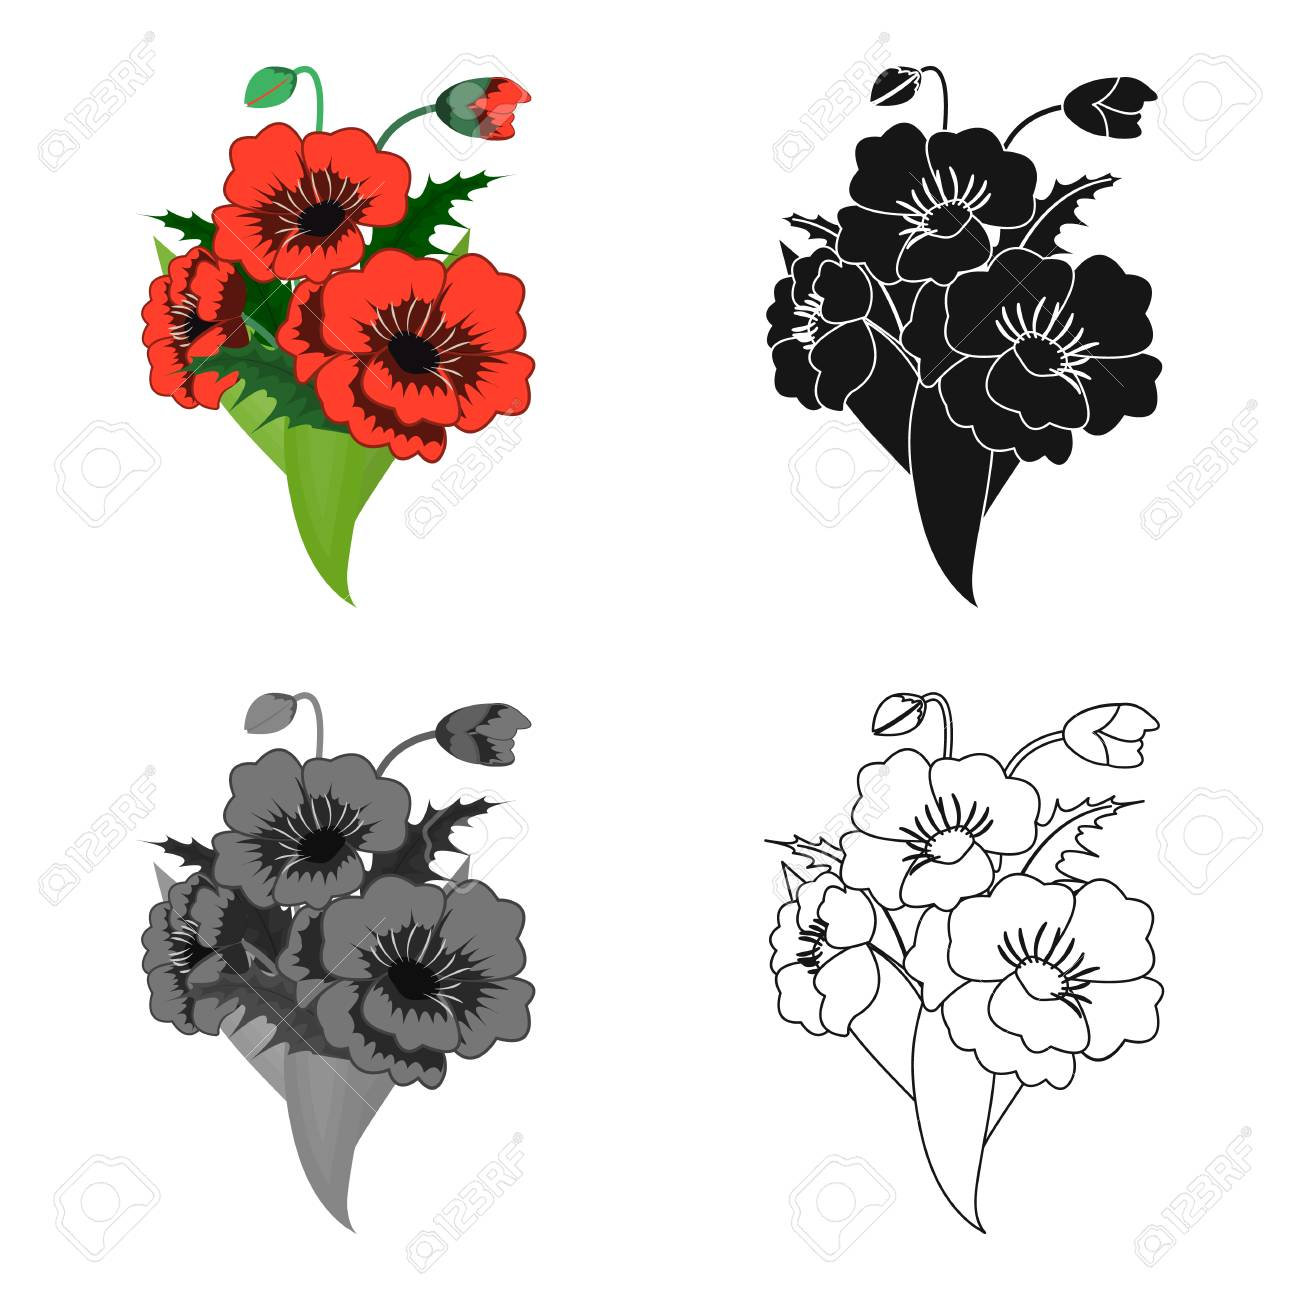 A bouquet of fresh flowers single icon in cartoonblackmonochrome a bouquet of fresh flowers single icon in cartoonblackmonochromeoutline style izmirmasajfo